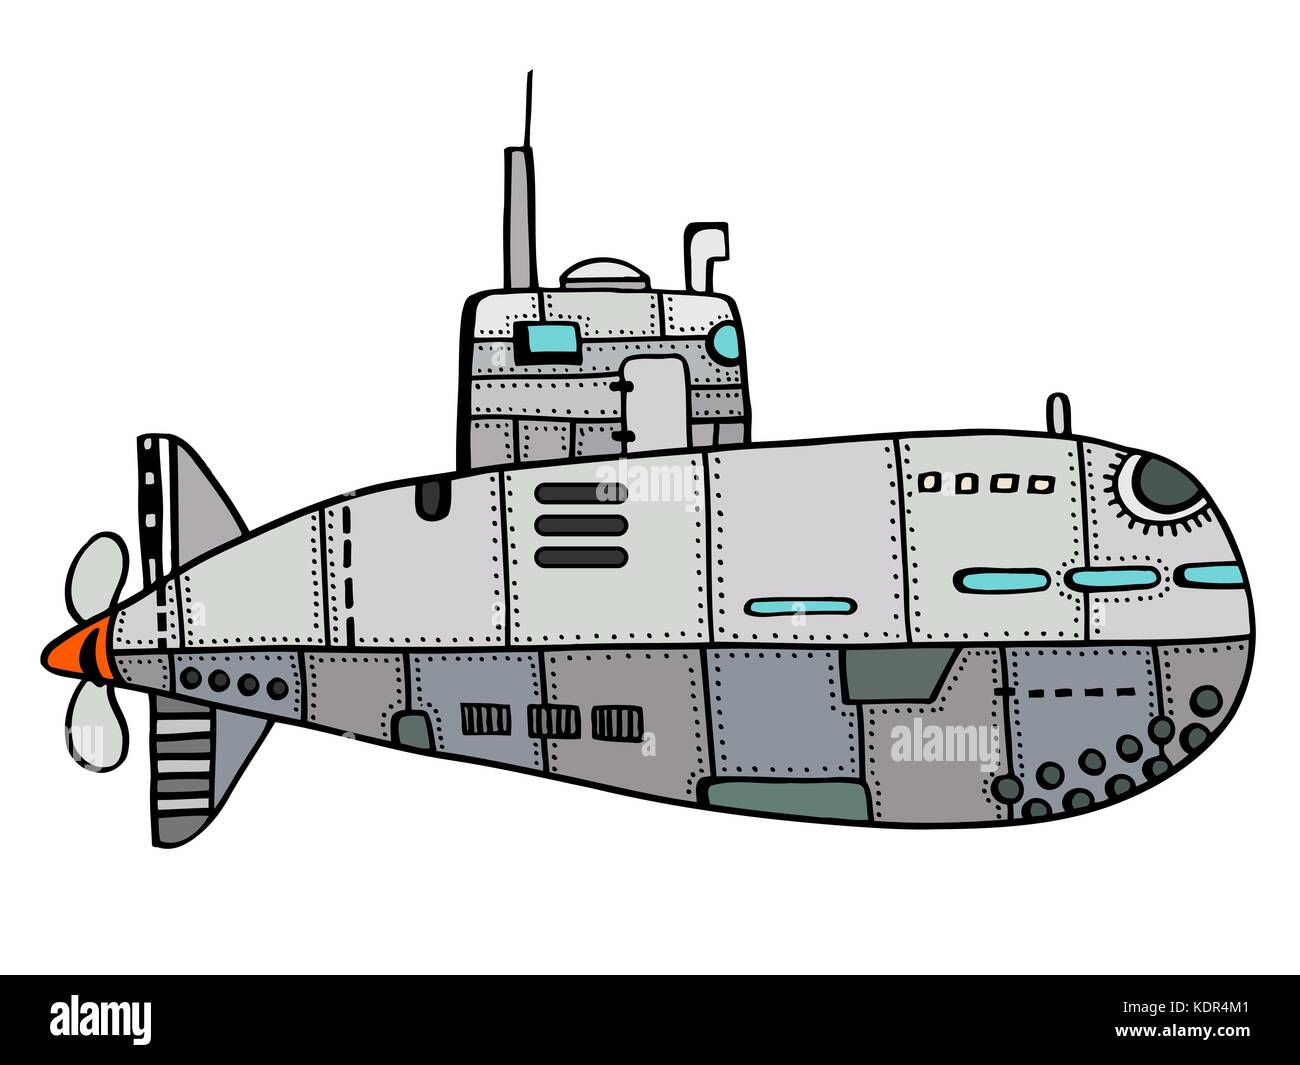 Submarine pen stock photos submarine pen stock images alamy colored doodle sketch of old submarine vector illustration art stock image pooptronica